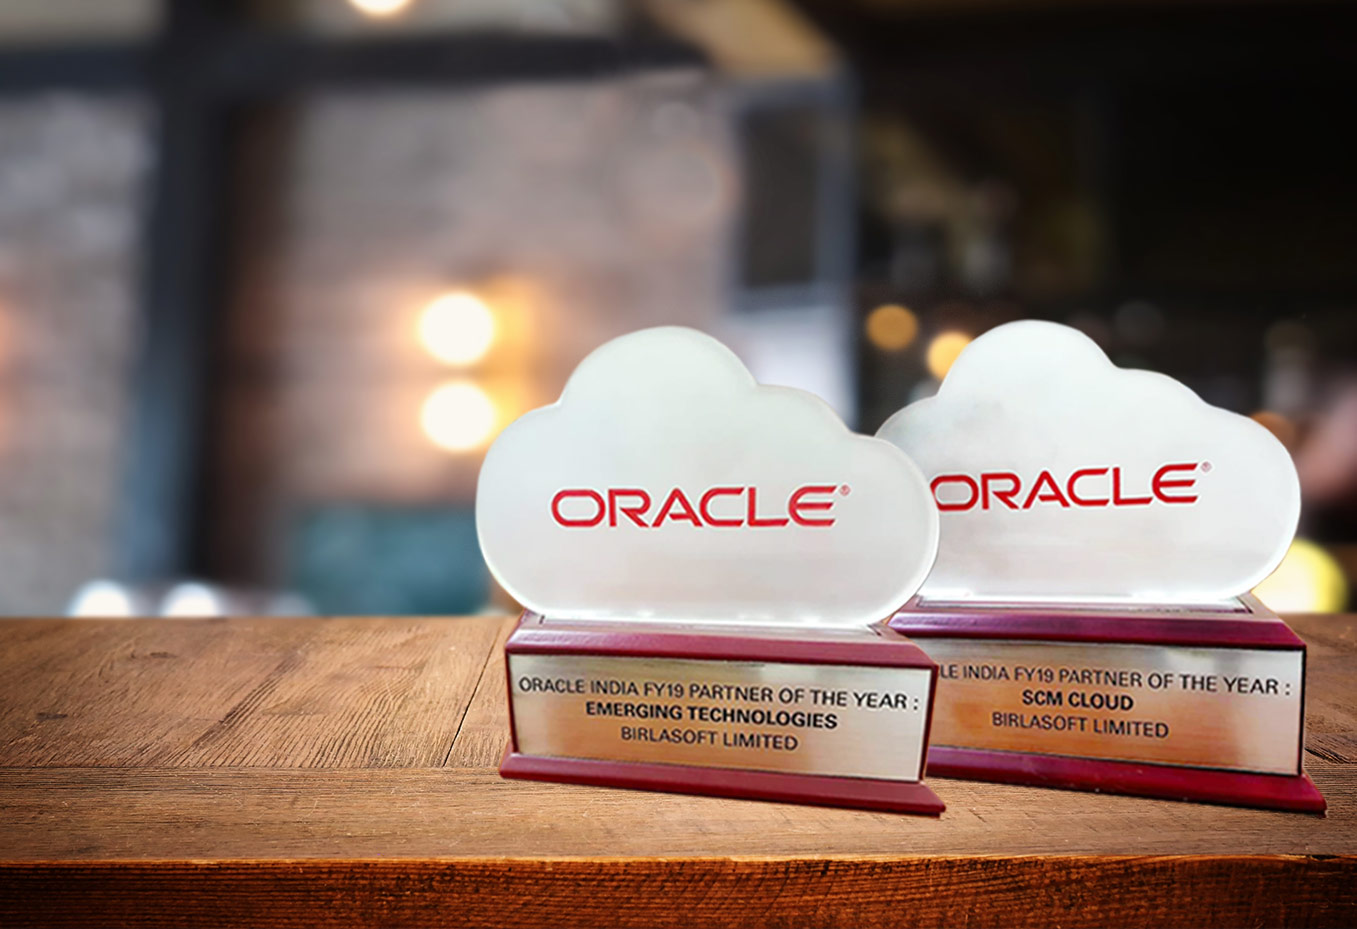 Two Major Awards at the Oracle India Partner Forum FY19